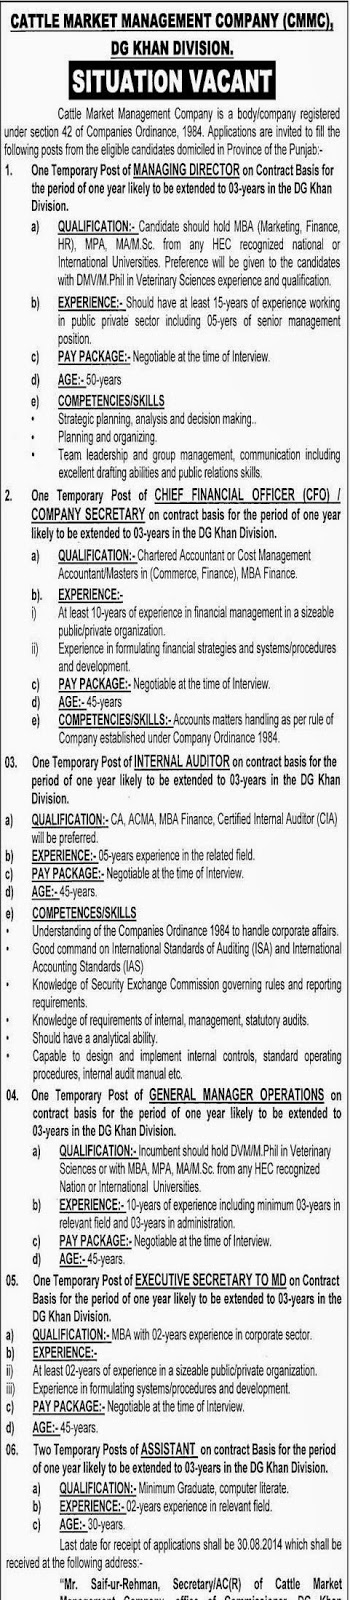 Internal Auditor, Chief Financial Officer and Managing Director Jobs in Cattle Market Management Company, DG Khan